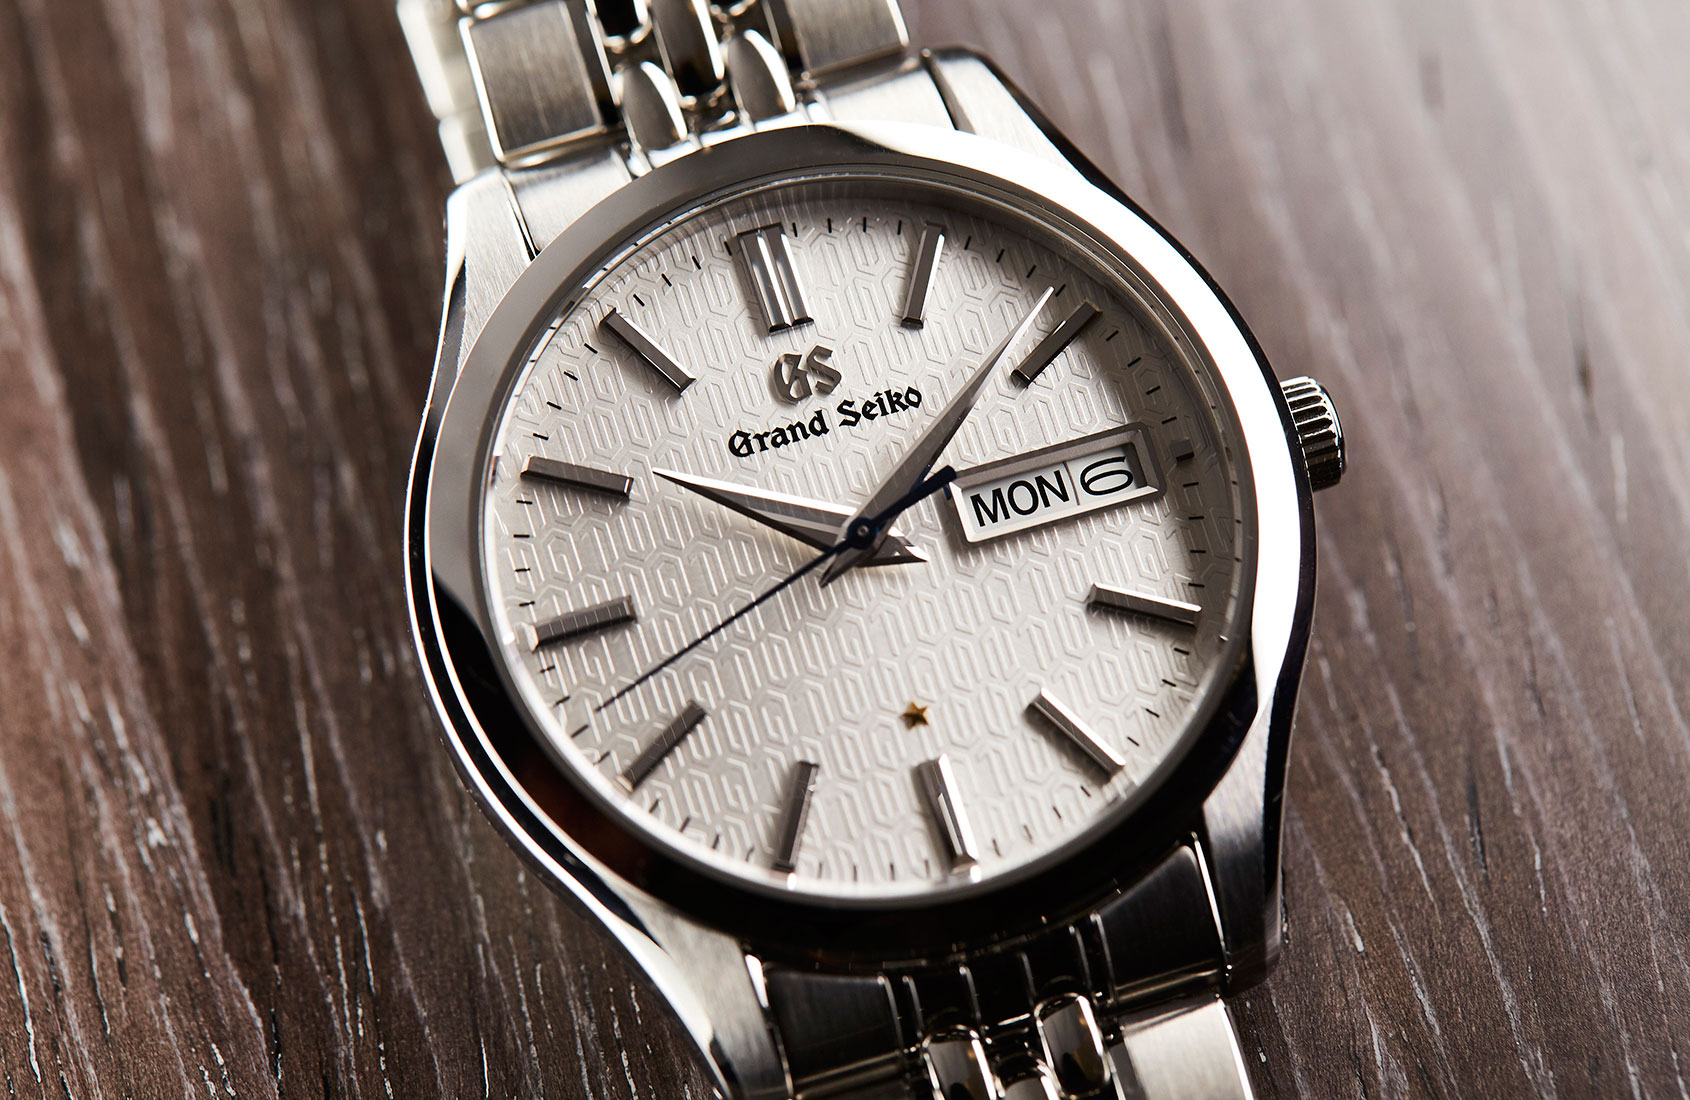 GRAND SEIKO CALIBER 9F 25TH ANNIVERSARY LIMITED EDITION SBGT241G - one of the best quartz watches of 2018